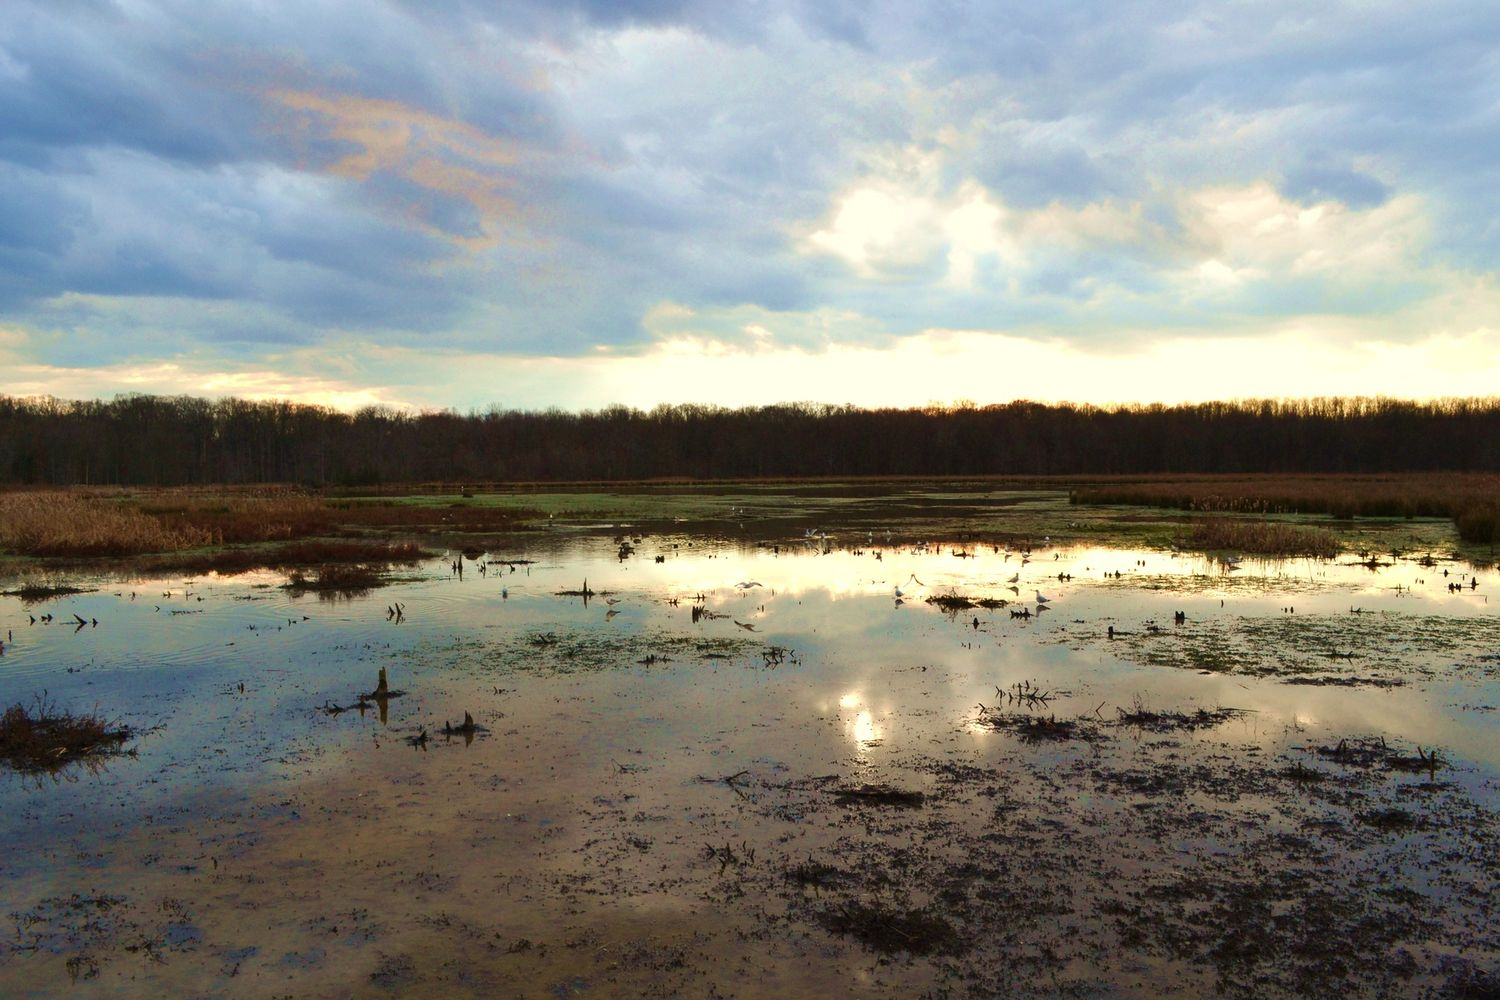 nature emits glorious colours over wetland preserves